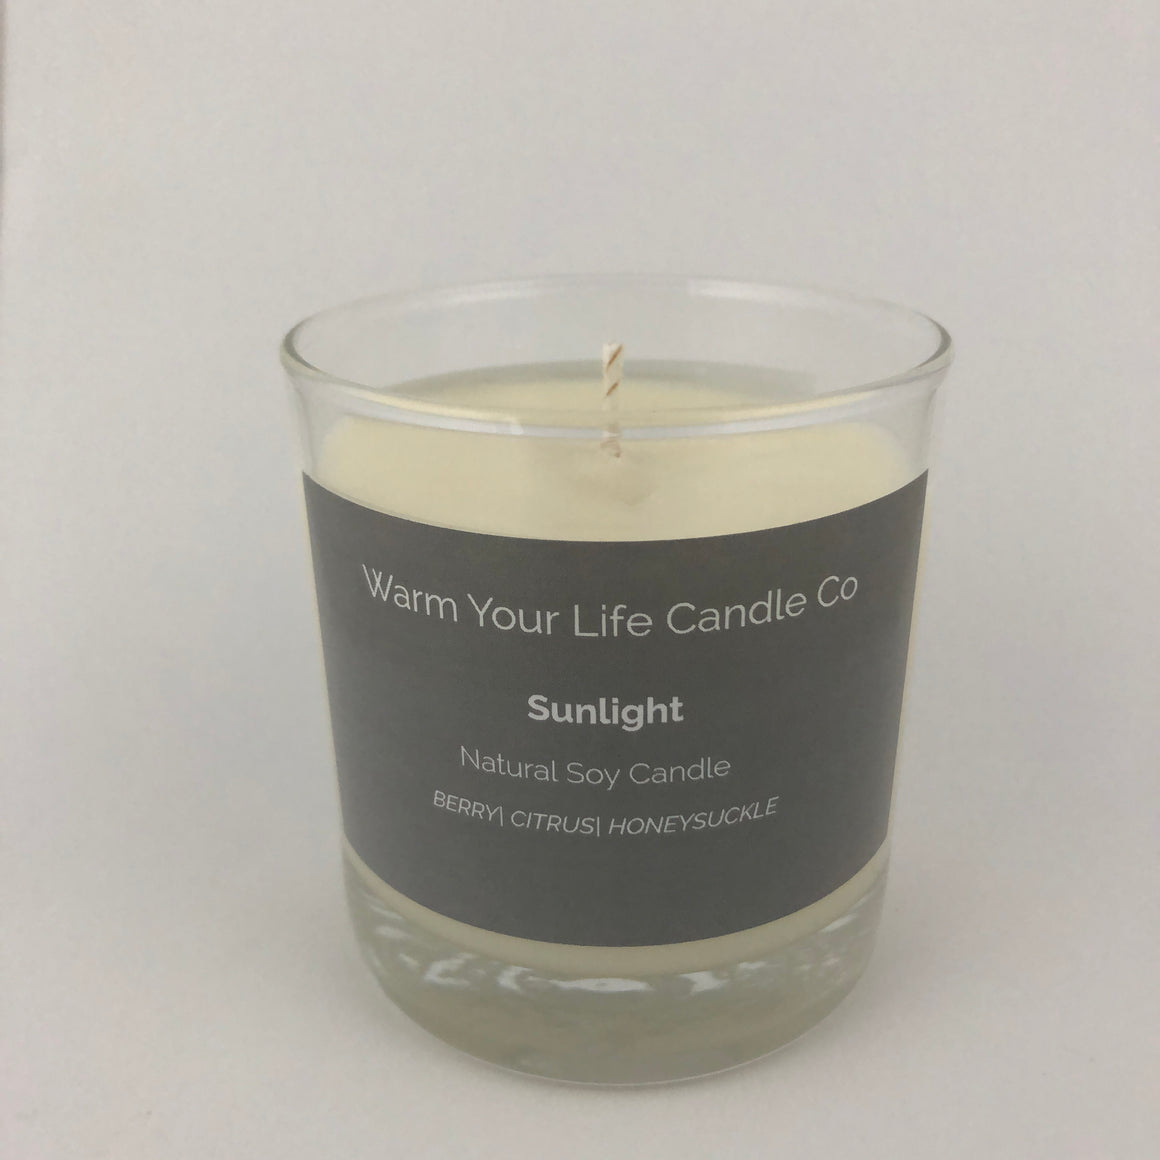 Sunlight Soy Candle